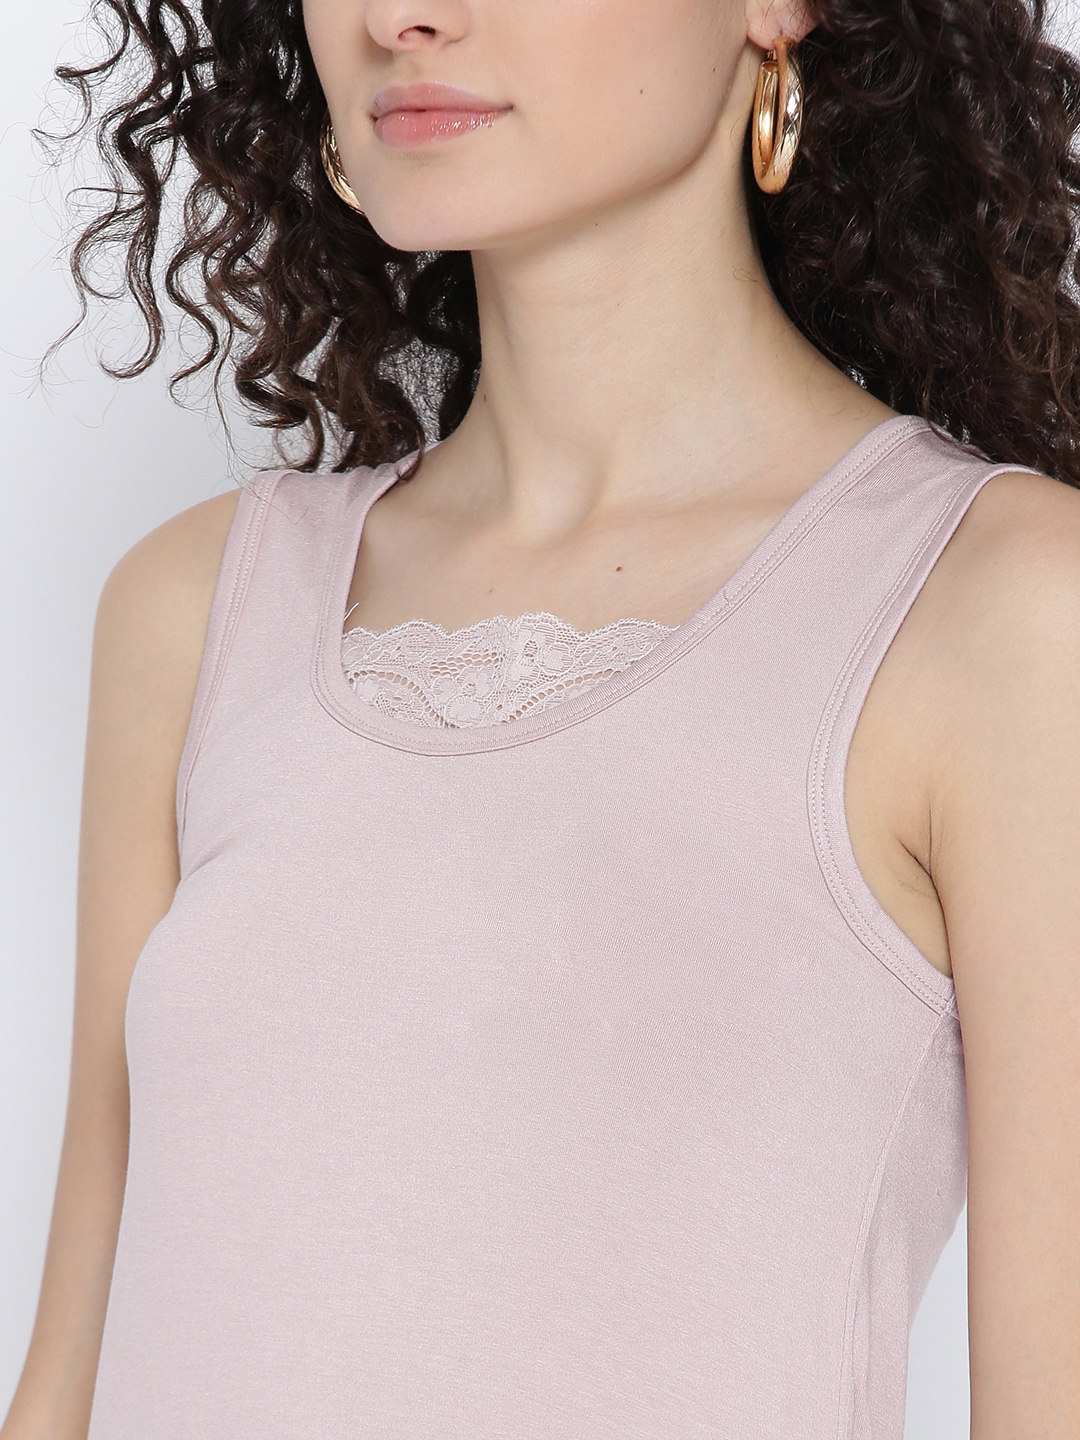 19034e7c074d2 Buy OVS Women Light Pink Lace Detail Top - Tops for Women 2957562 ...